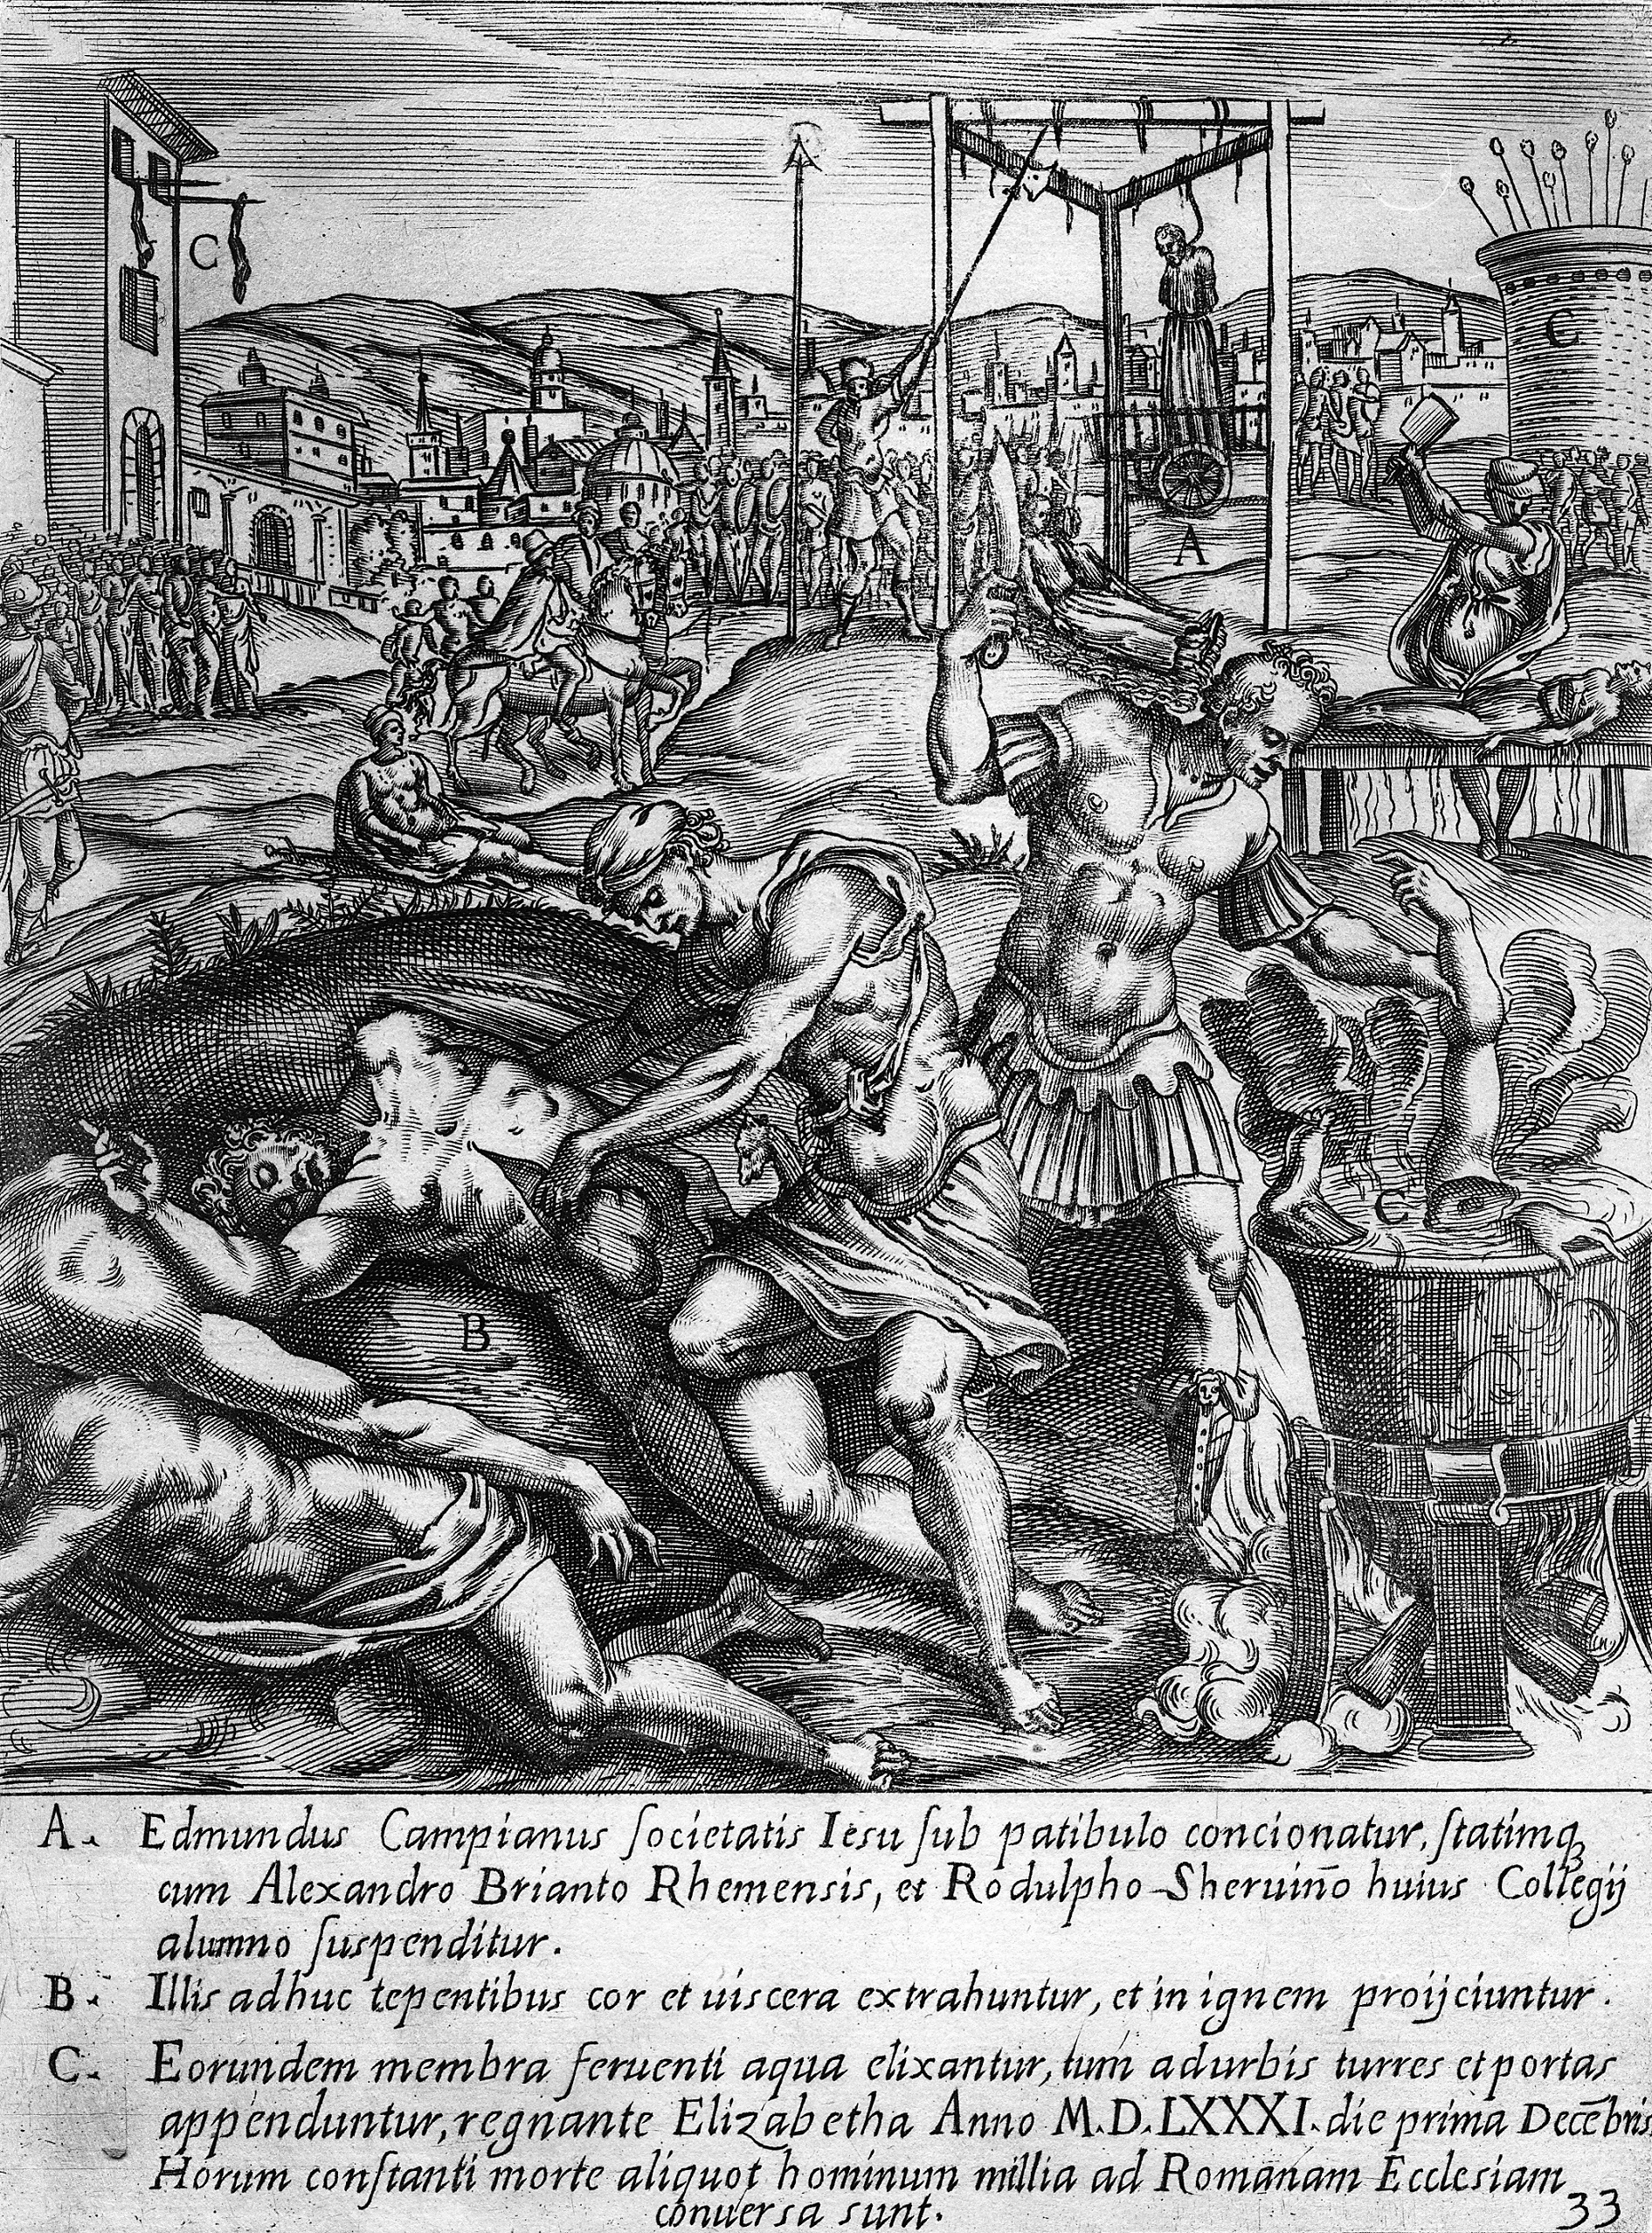 Picture of bodies being cut apart and organs pulled out, while another person is hanging from the scaffold behind. There are crowds of onlookers and buildings around the edges.